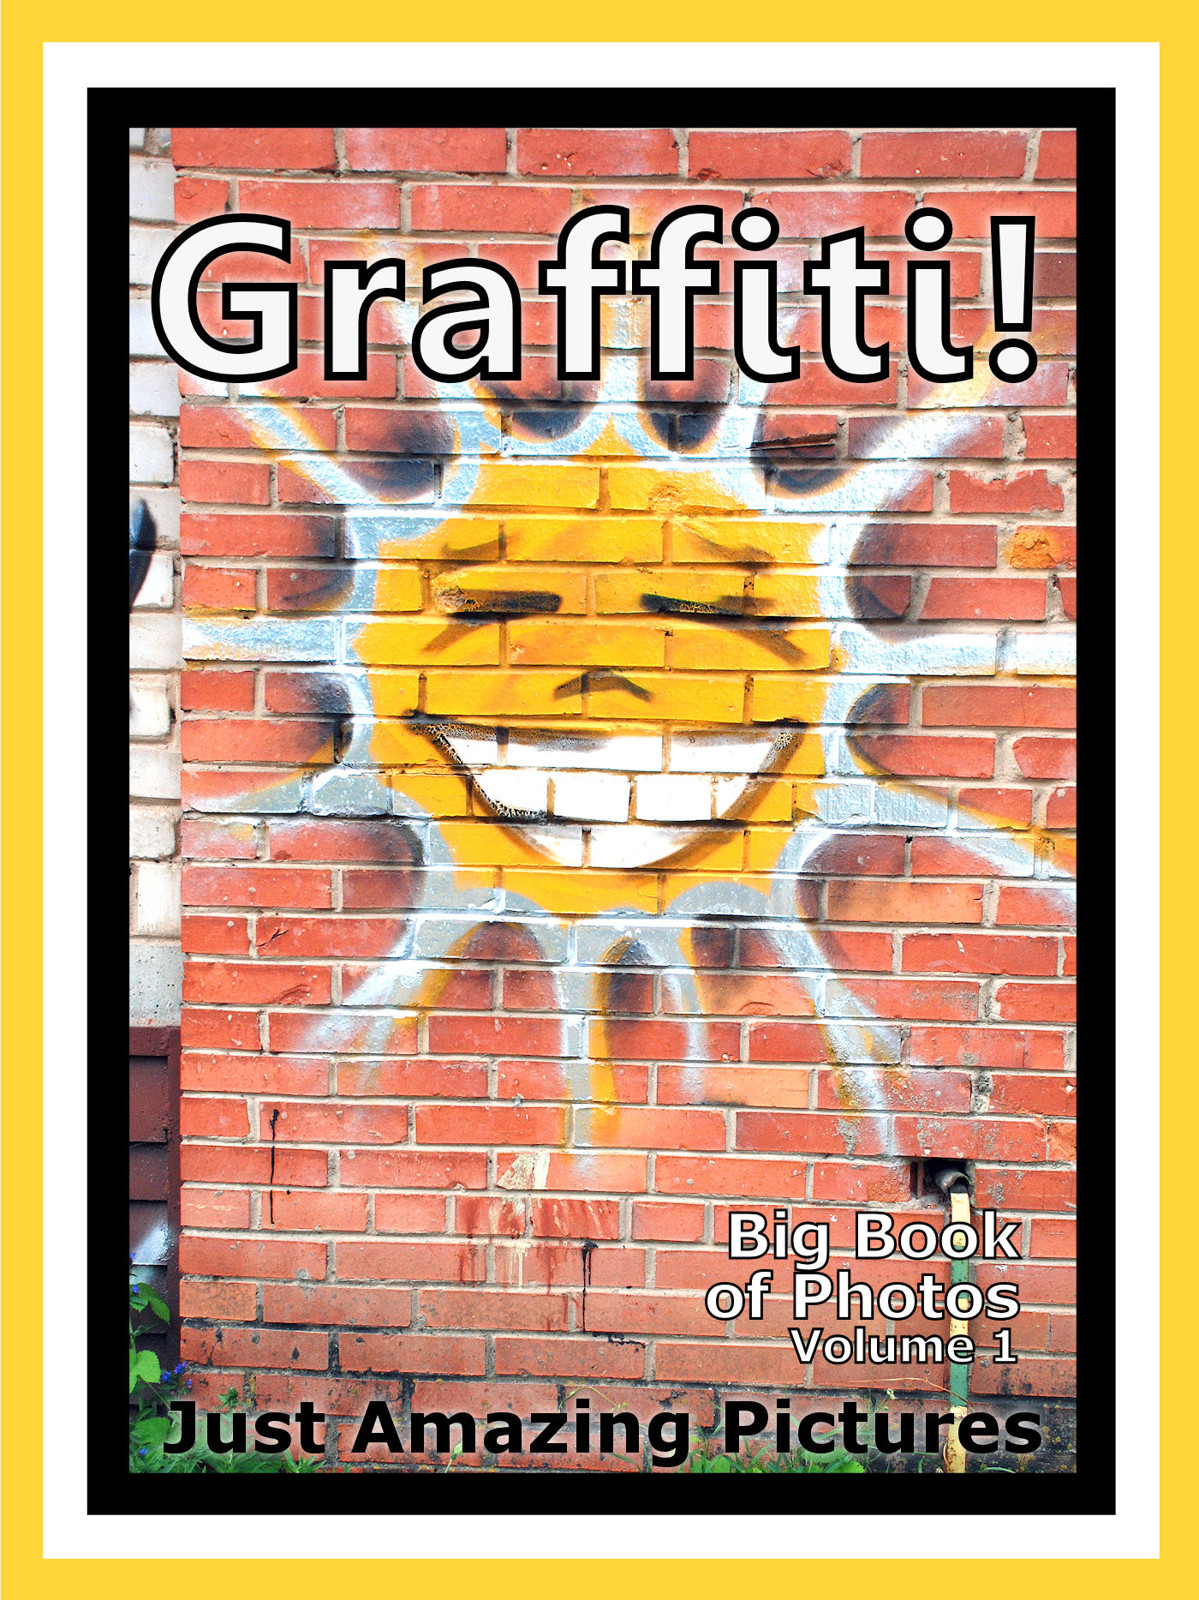 Just Graffiti Photos! Big Book of Photographs & Pictures of Graffiti Street Art, Vol. 1